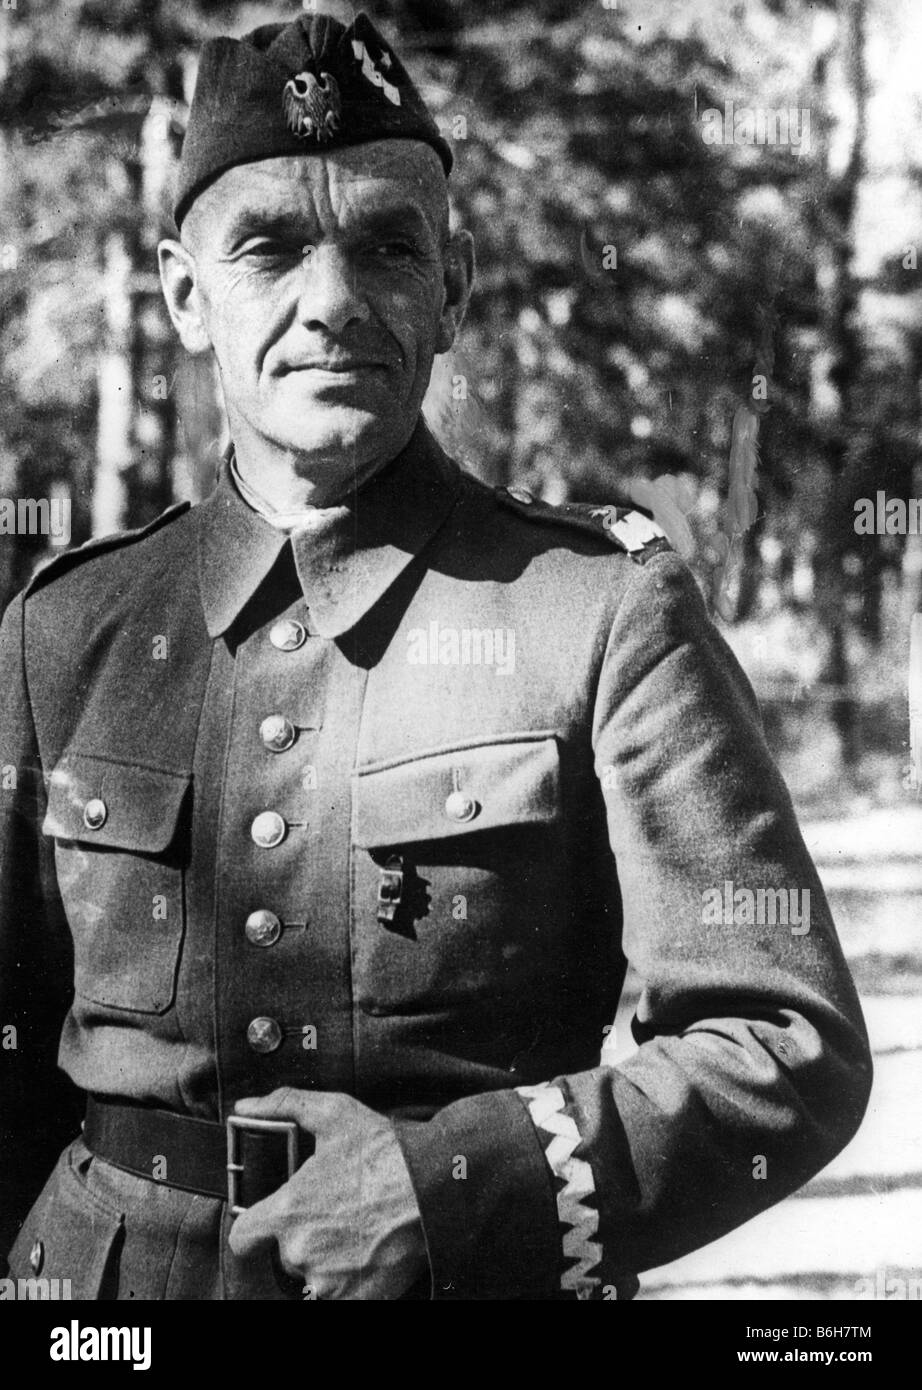 GENERAL ZIGMUNT BERLING Commander of the First Polish Army Corps supporting the Red Army in WW2 - Stock Image